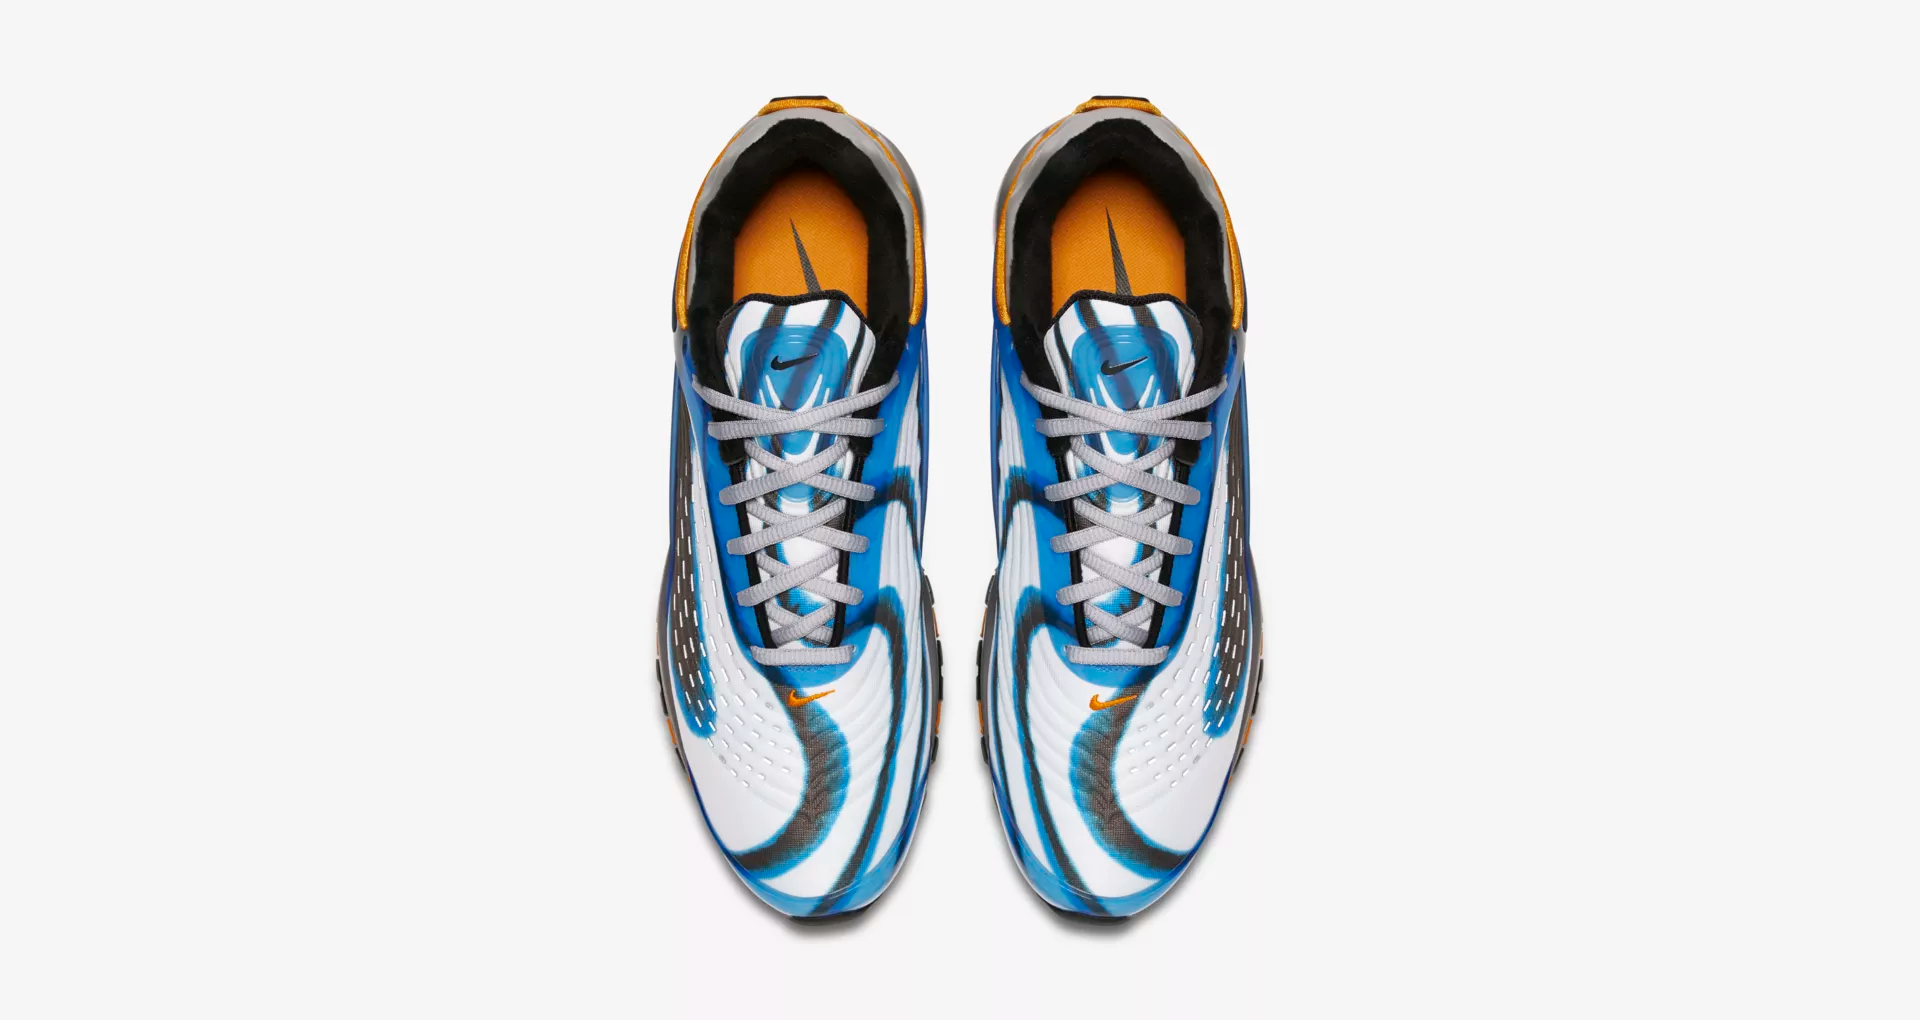 AJ7831 401 Nike Air Max Deluxe Photo Blue 5